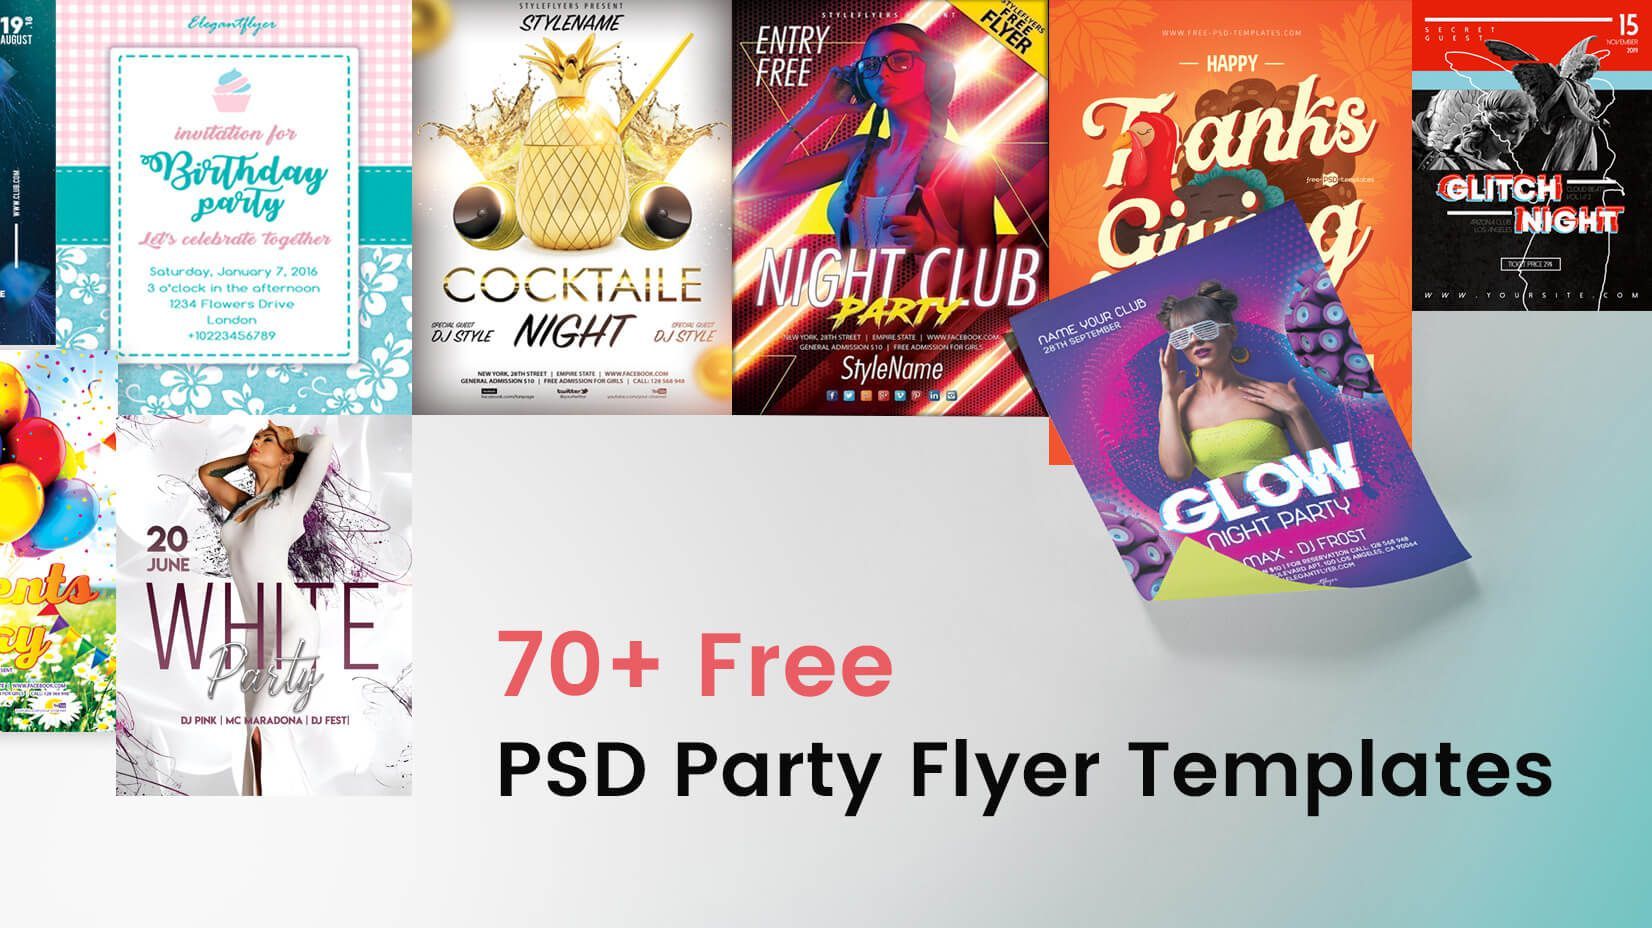 005 Stupendou Photoshop Poster Design Template Free Download Full